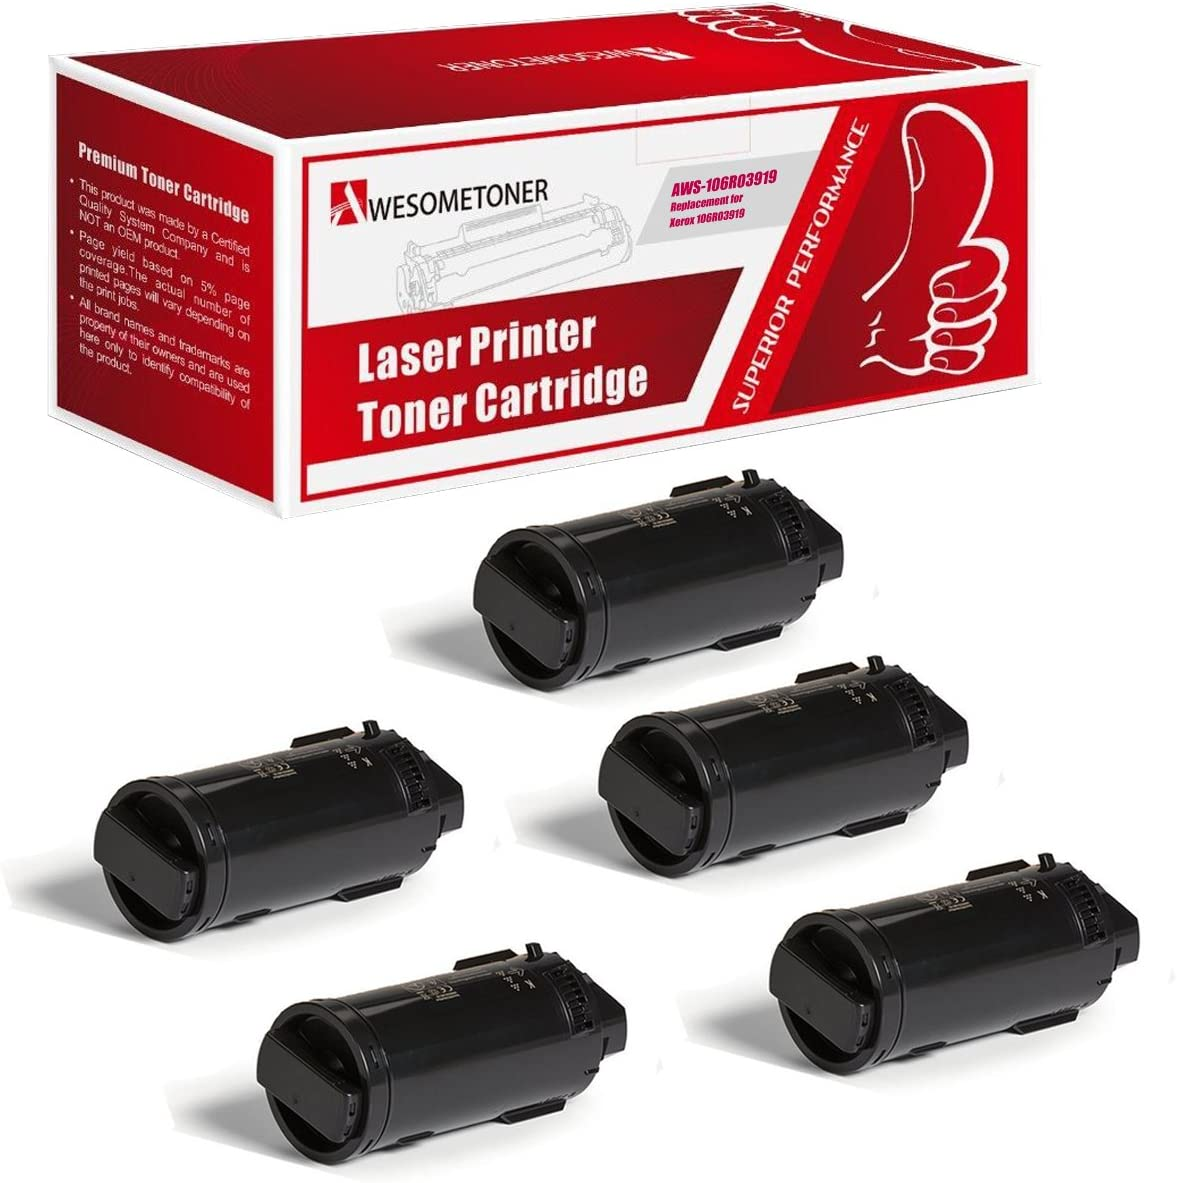 Awesometoner Compatible Extra High Capacity Toner Cartridge Replacement for Xerox 106R03919 use with VersaLink C600s Black, 5-Pack